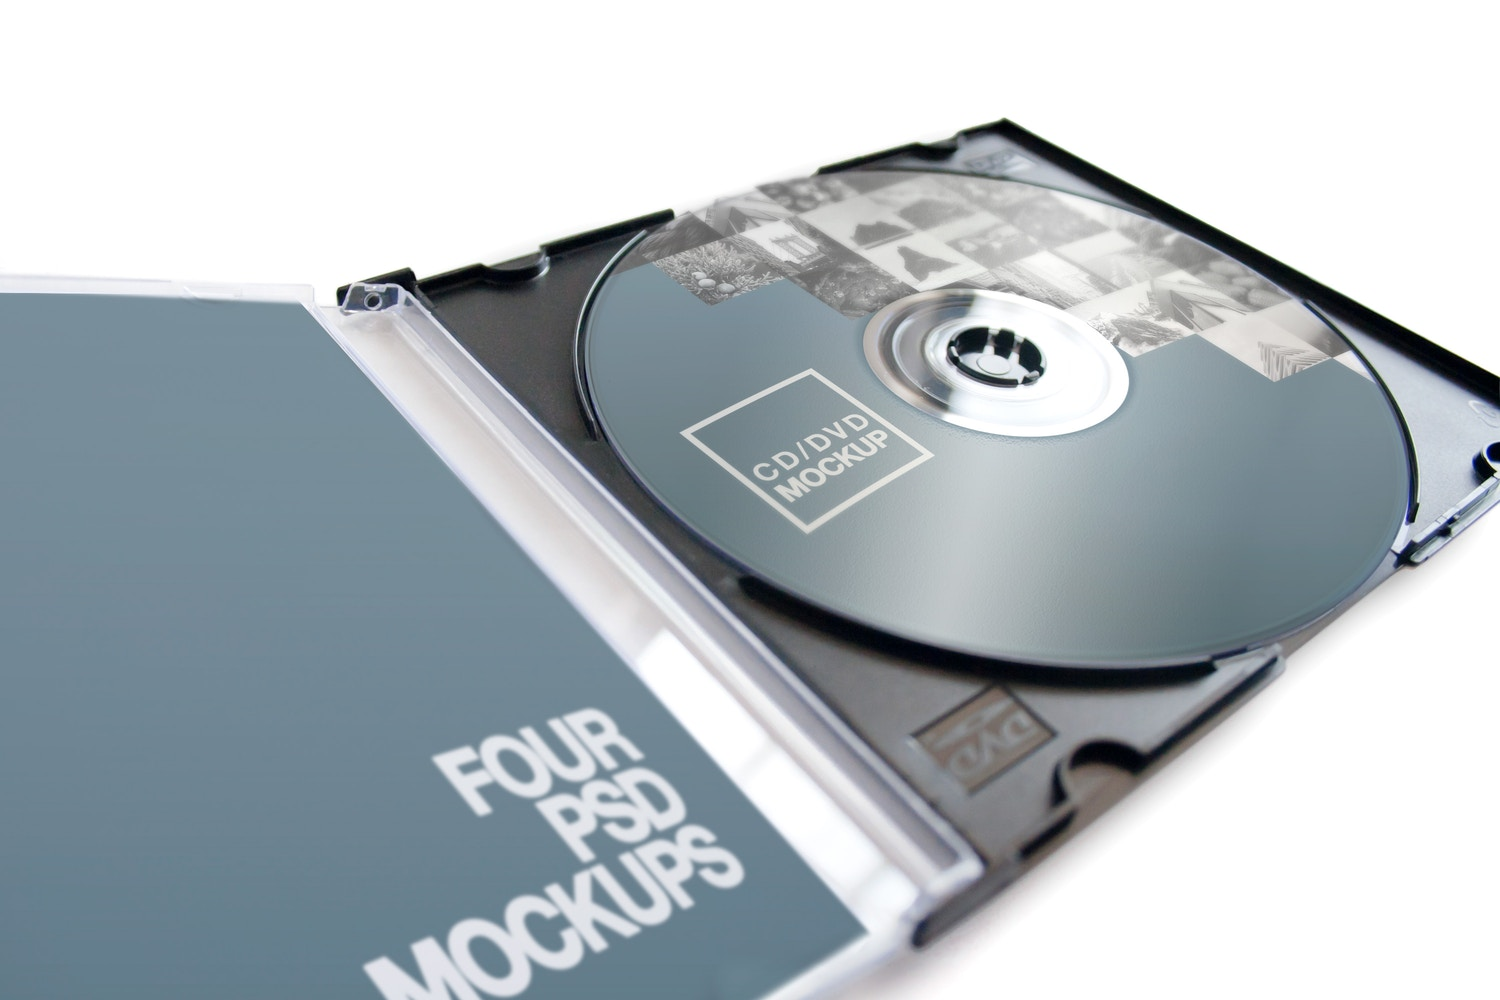 CD-DVD Jewel Case Opened Mockup 01 by Carlos Viloria on Original Mockups